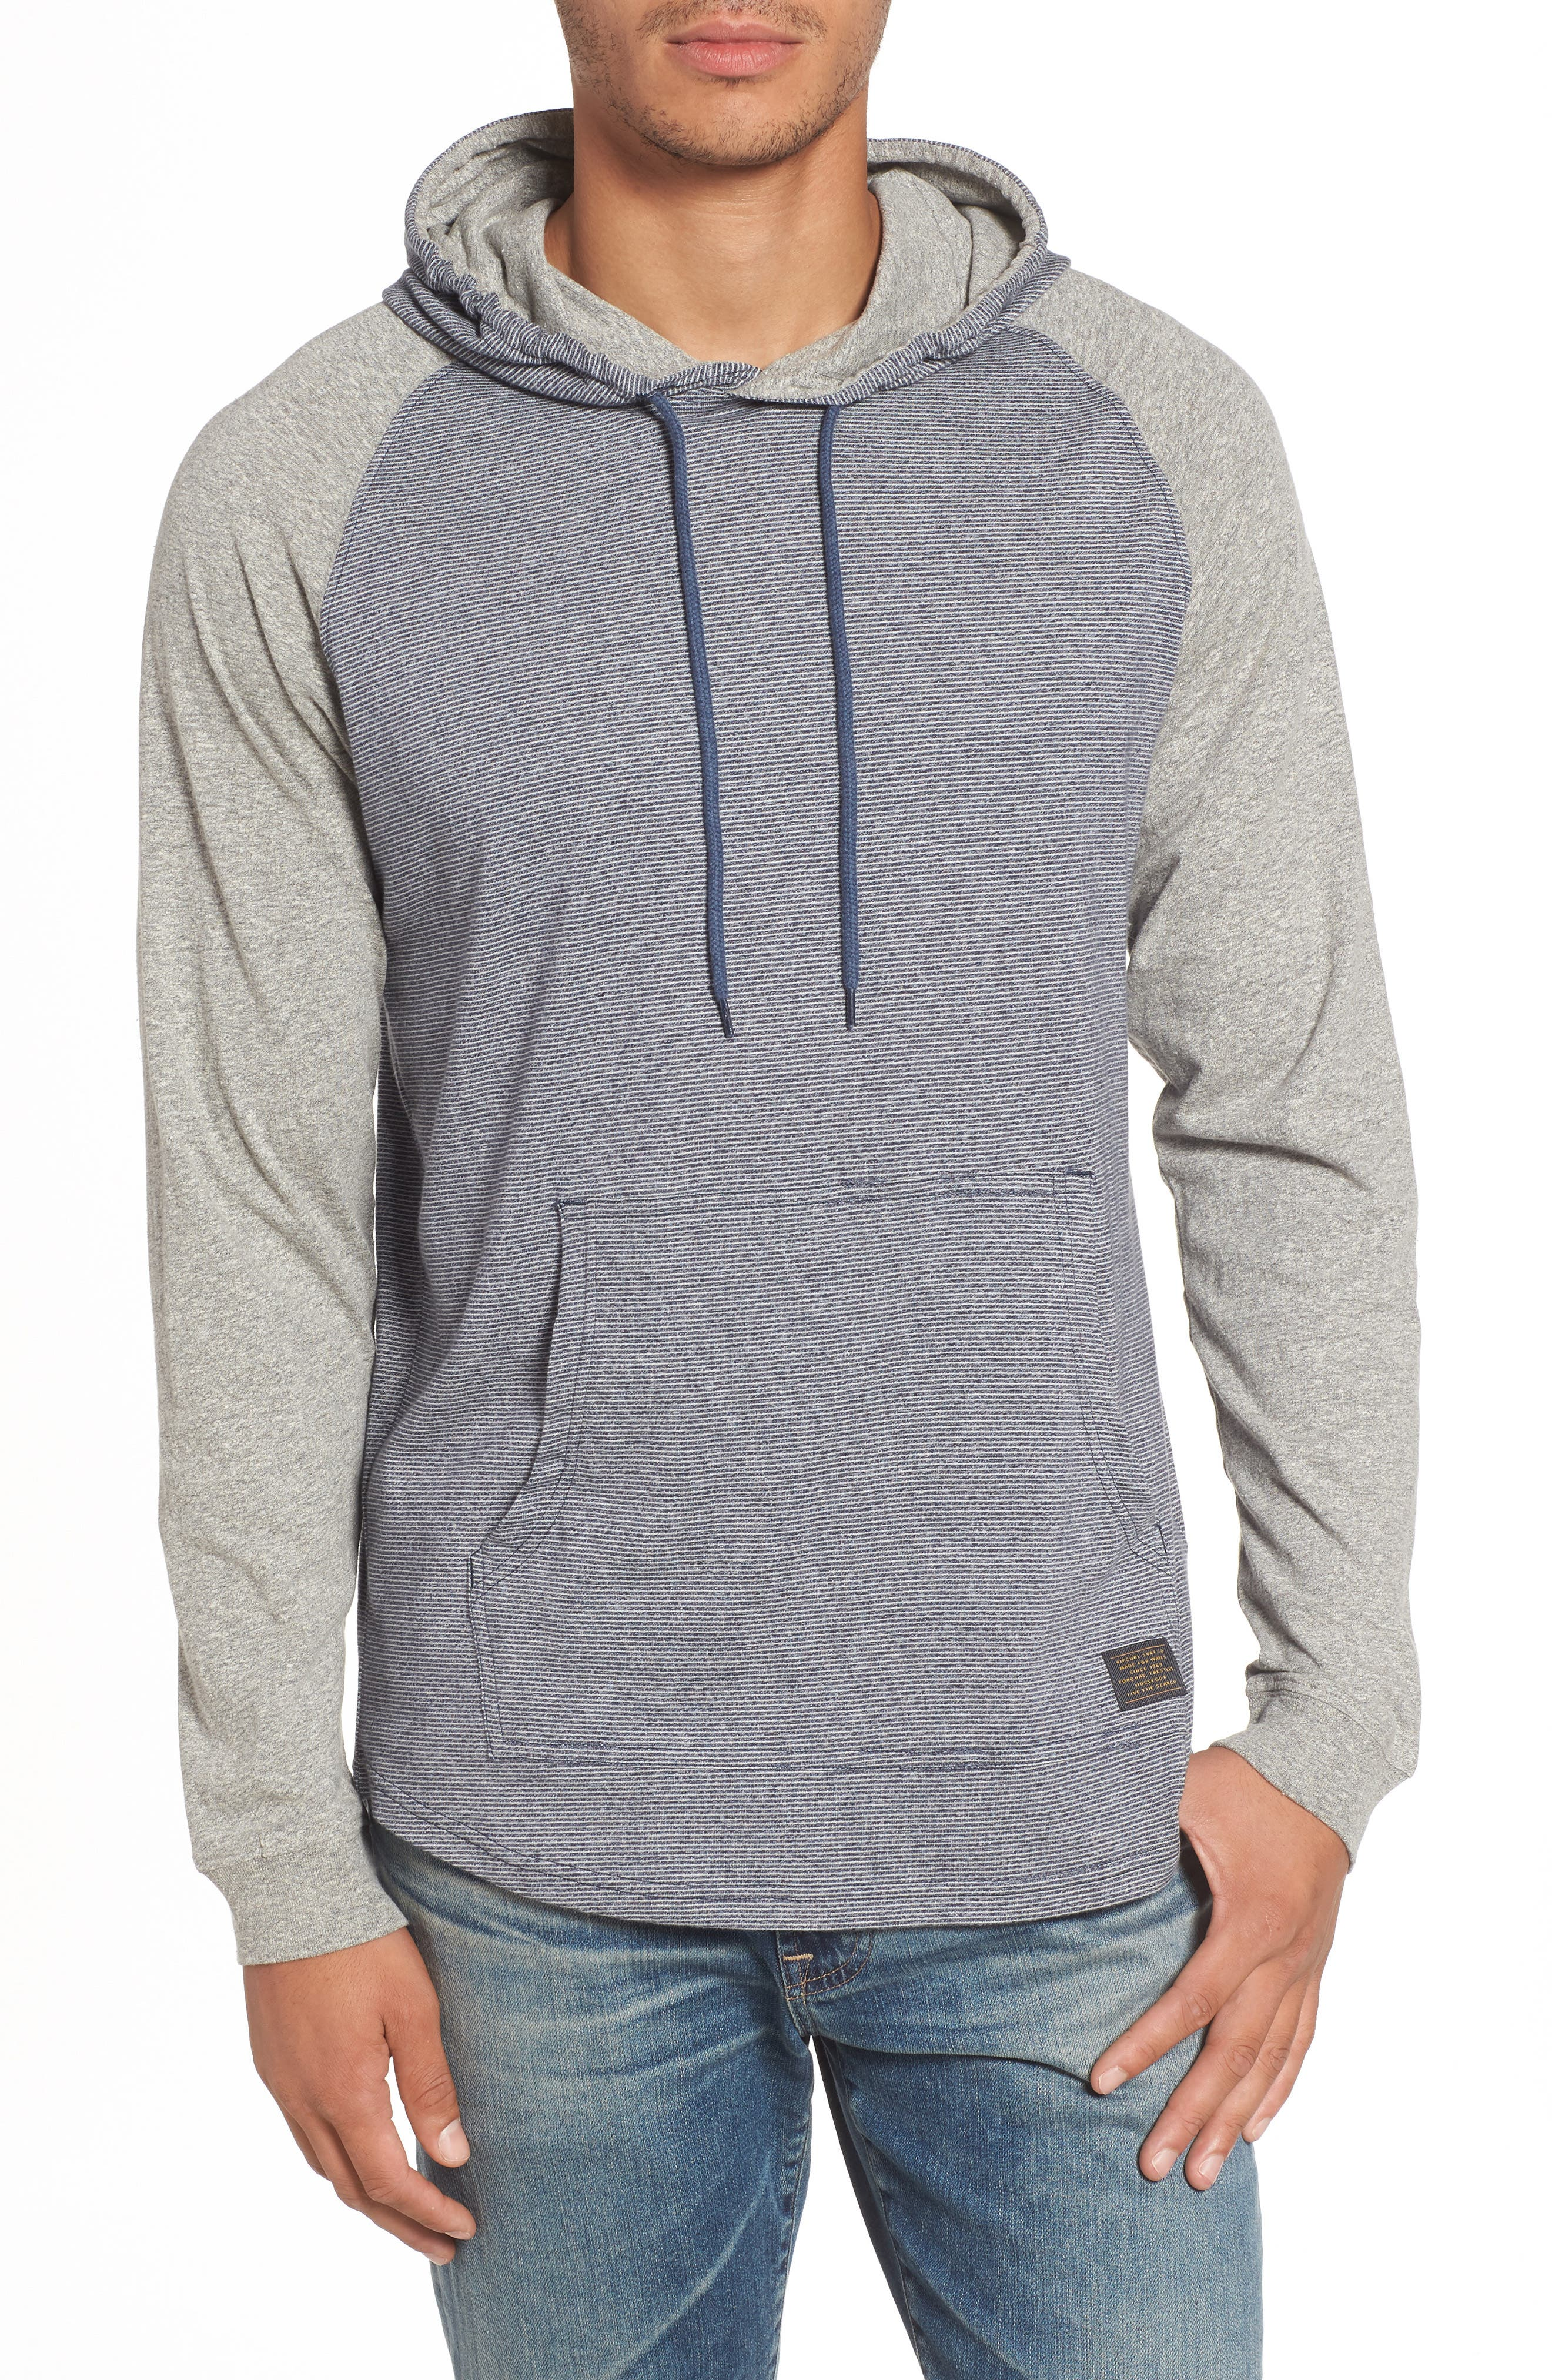 All In Hoodie,                             Main thumbnail 1, color,                             410